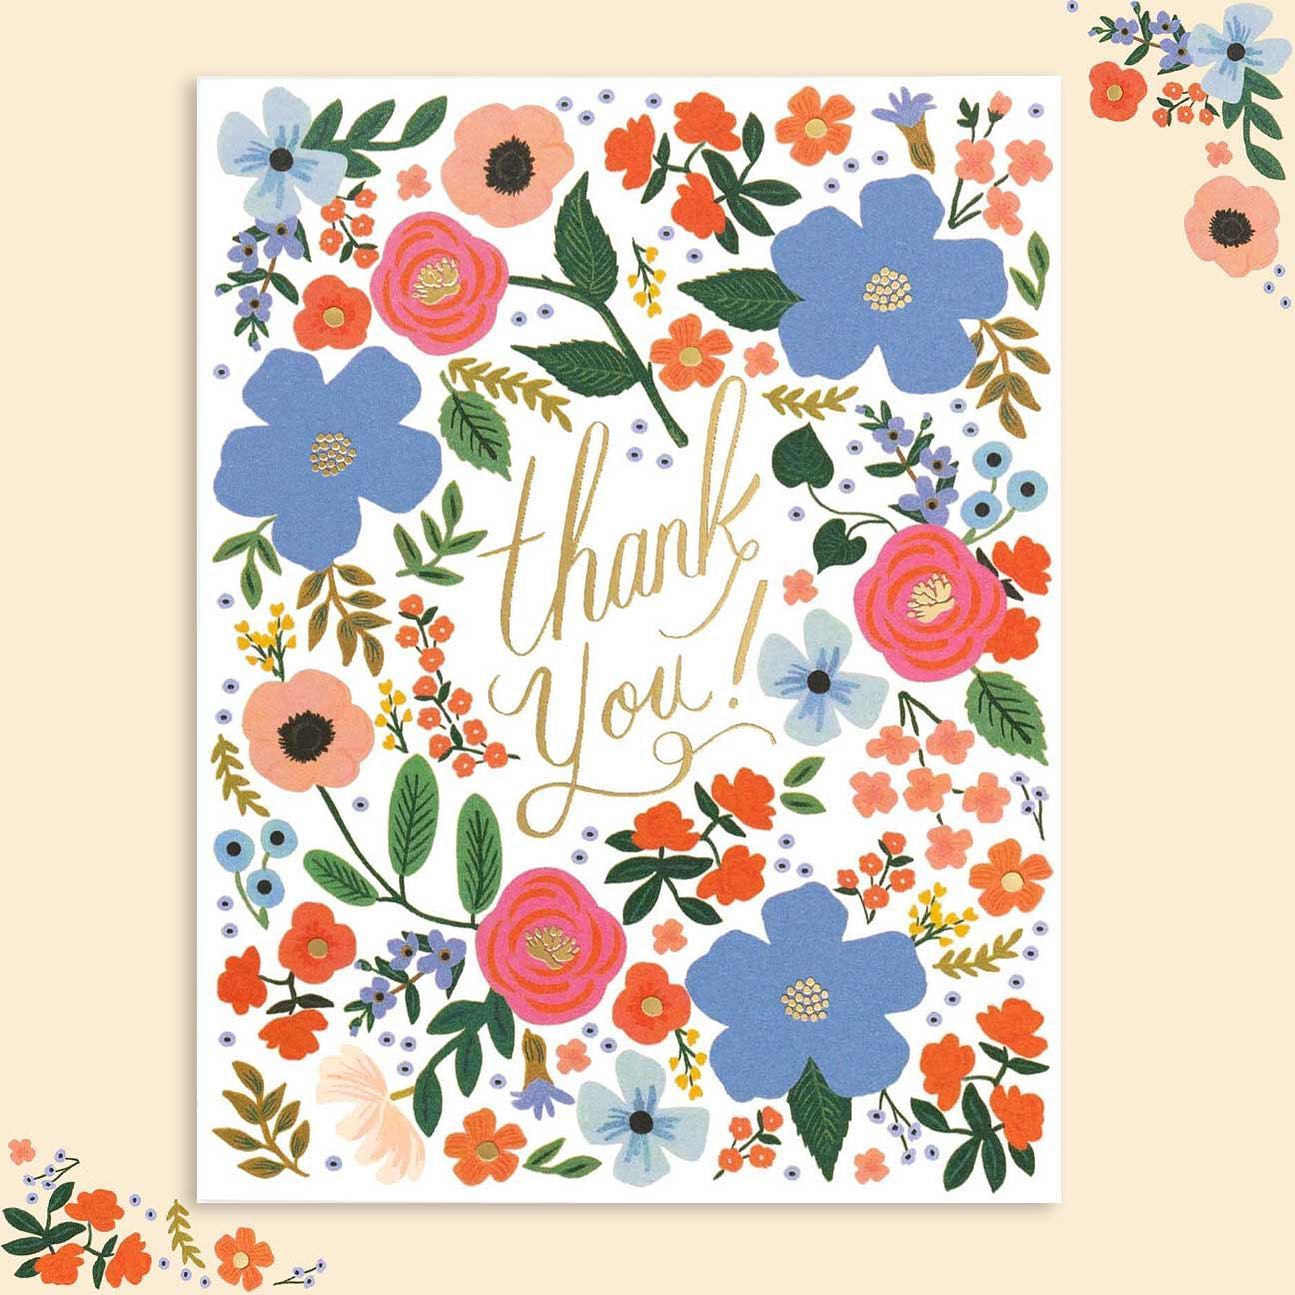 Continuing our series of thank yous - this time our thanks goes out to the family members and especially wonderful grandparents who have gone out of their way to support their family during prolonged times at home. Looking after children away from school and ensuring family harmony is no easy task!! Thank you .Send your messages of thanks personally with our beautiful range of cards from @riflepaperco and more. The Steamship outlet store is still running! Get in touch by dm or email..#singaporeshopping #sendlove #singaporedeals #riflepaper #outletstore #singapore #stayhome #stationery #giftcards #greetingcards #gooddesign